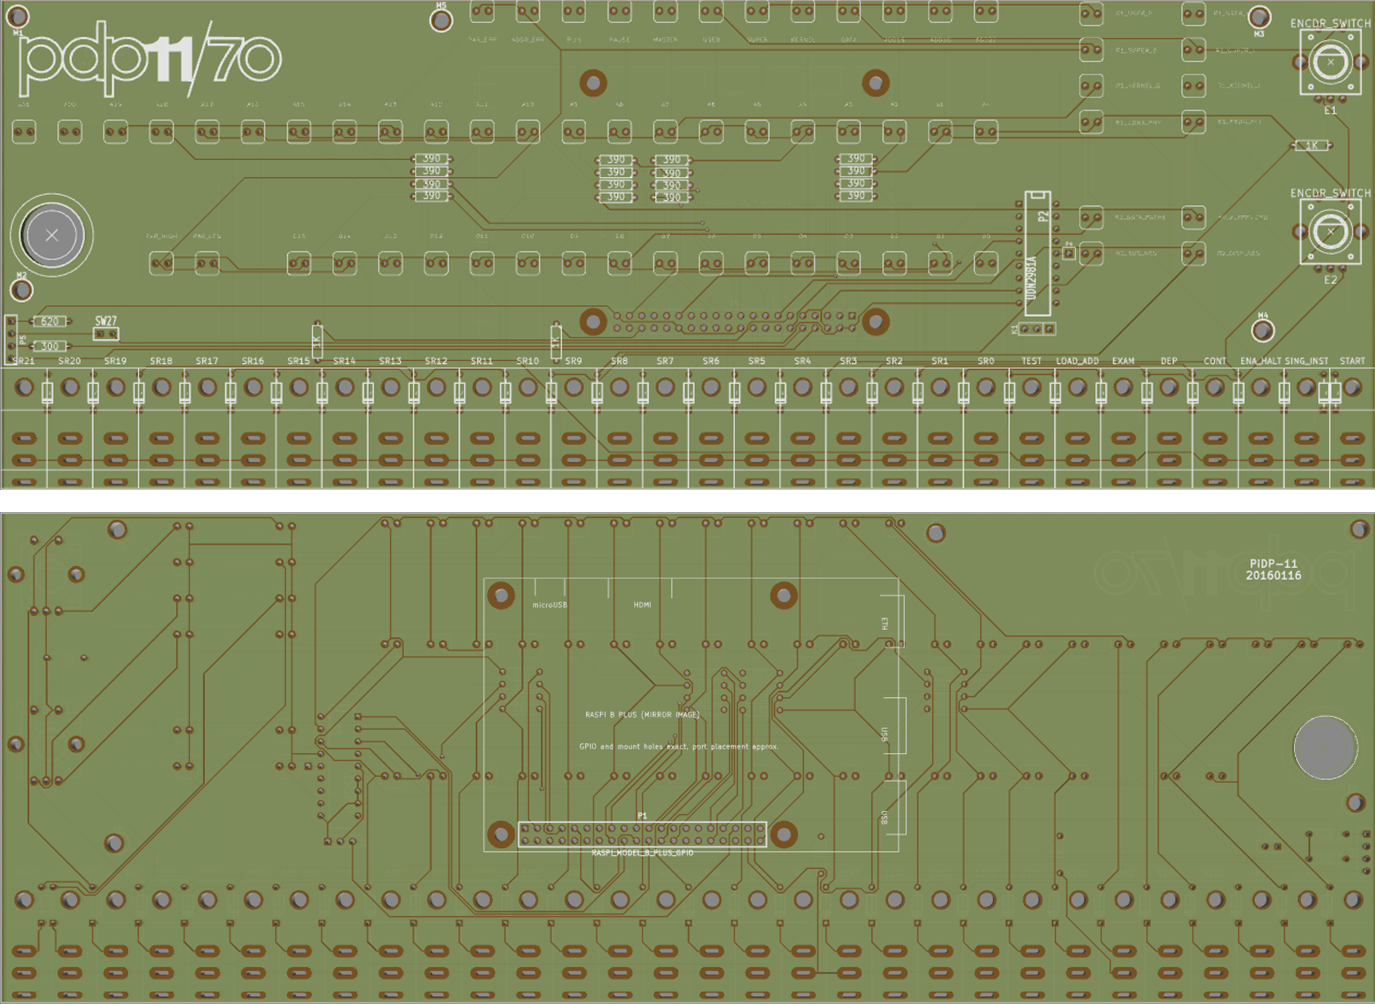 Starting To Make A Pidp 11 70 Obsolescence Guaranteed Free Electronic Circuits 8085 Projects Blog Archive Hall Sensor This Time I Chose Put The Raspberry Pi In Middle Of Pcb Rather Than Flush At One Side As Did For 8